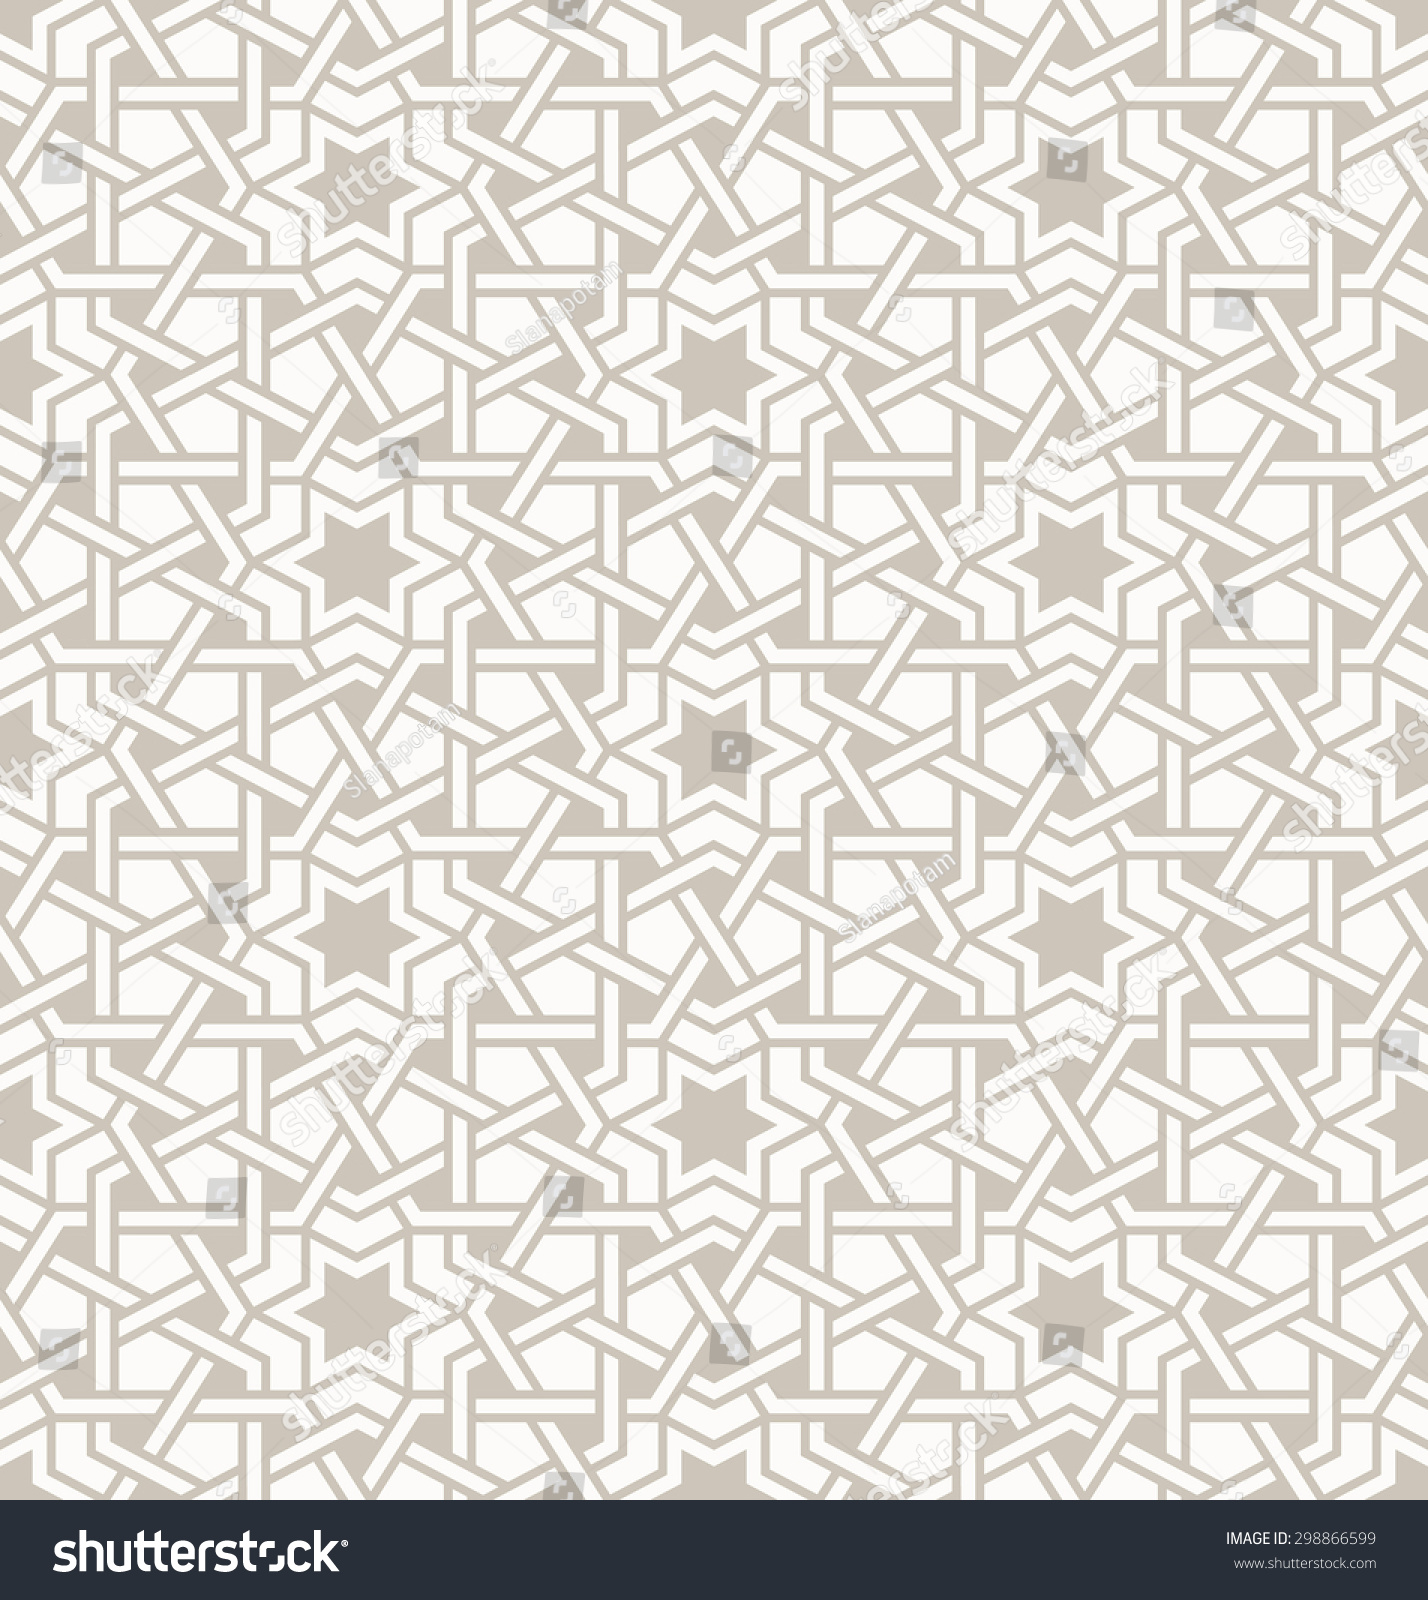 Royalty-free Tangled modern pattern, based on… #298866599 Stock ... for Modern Arabic Pattern Vector  131fsj